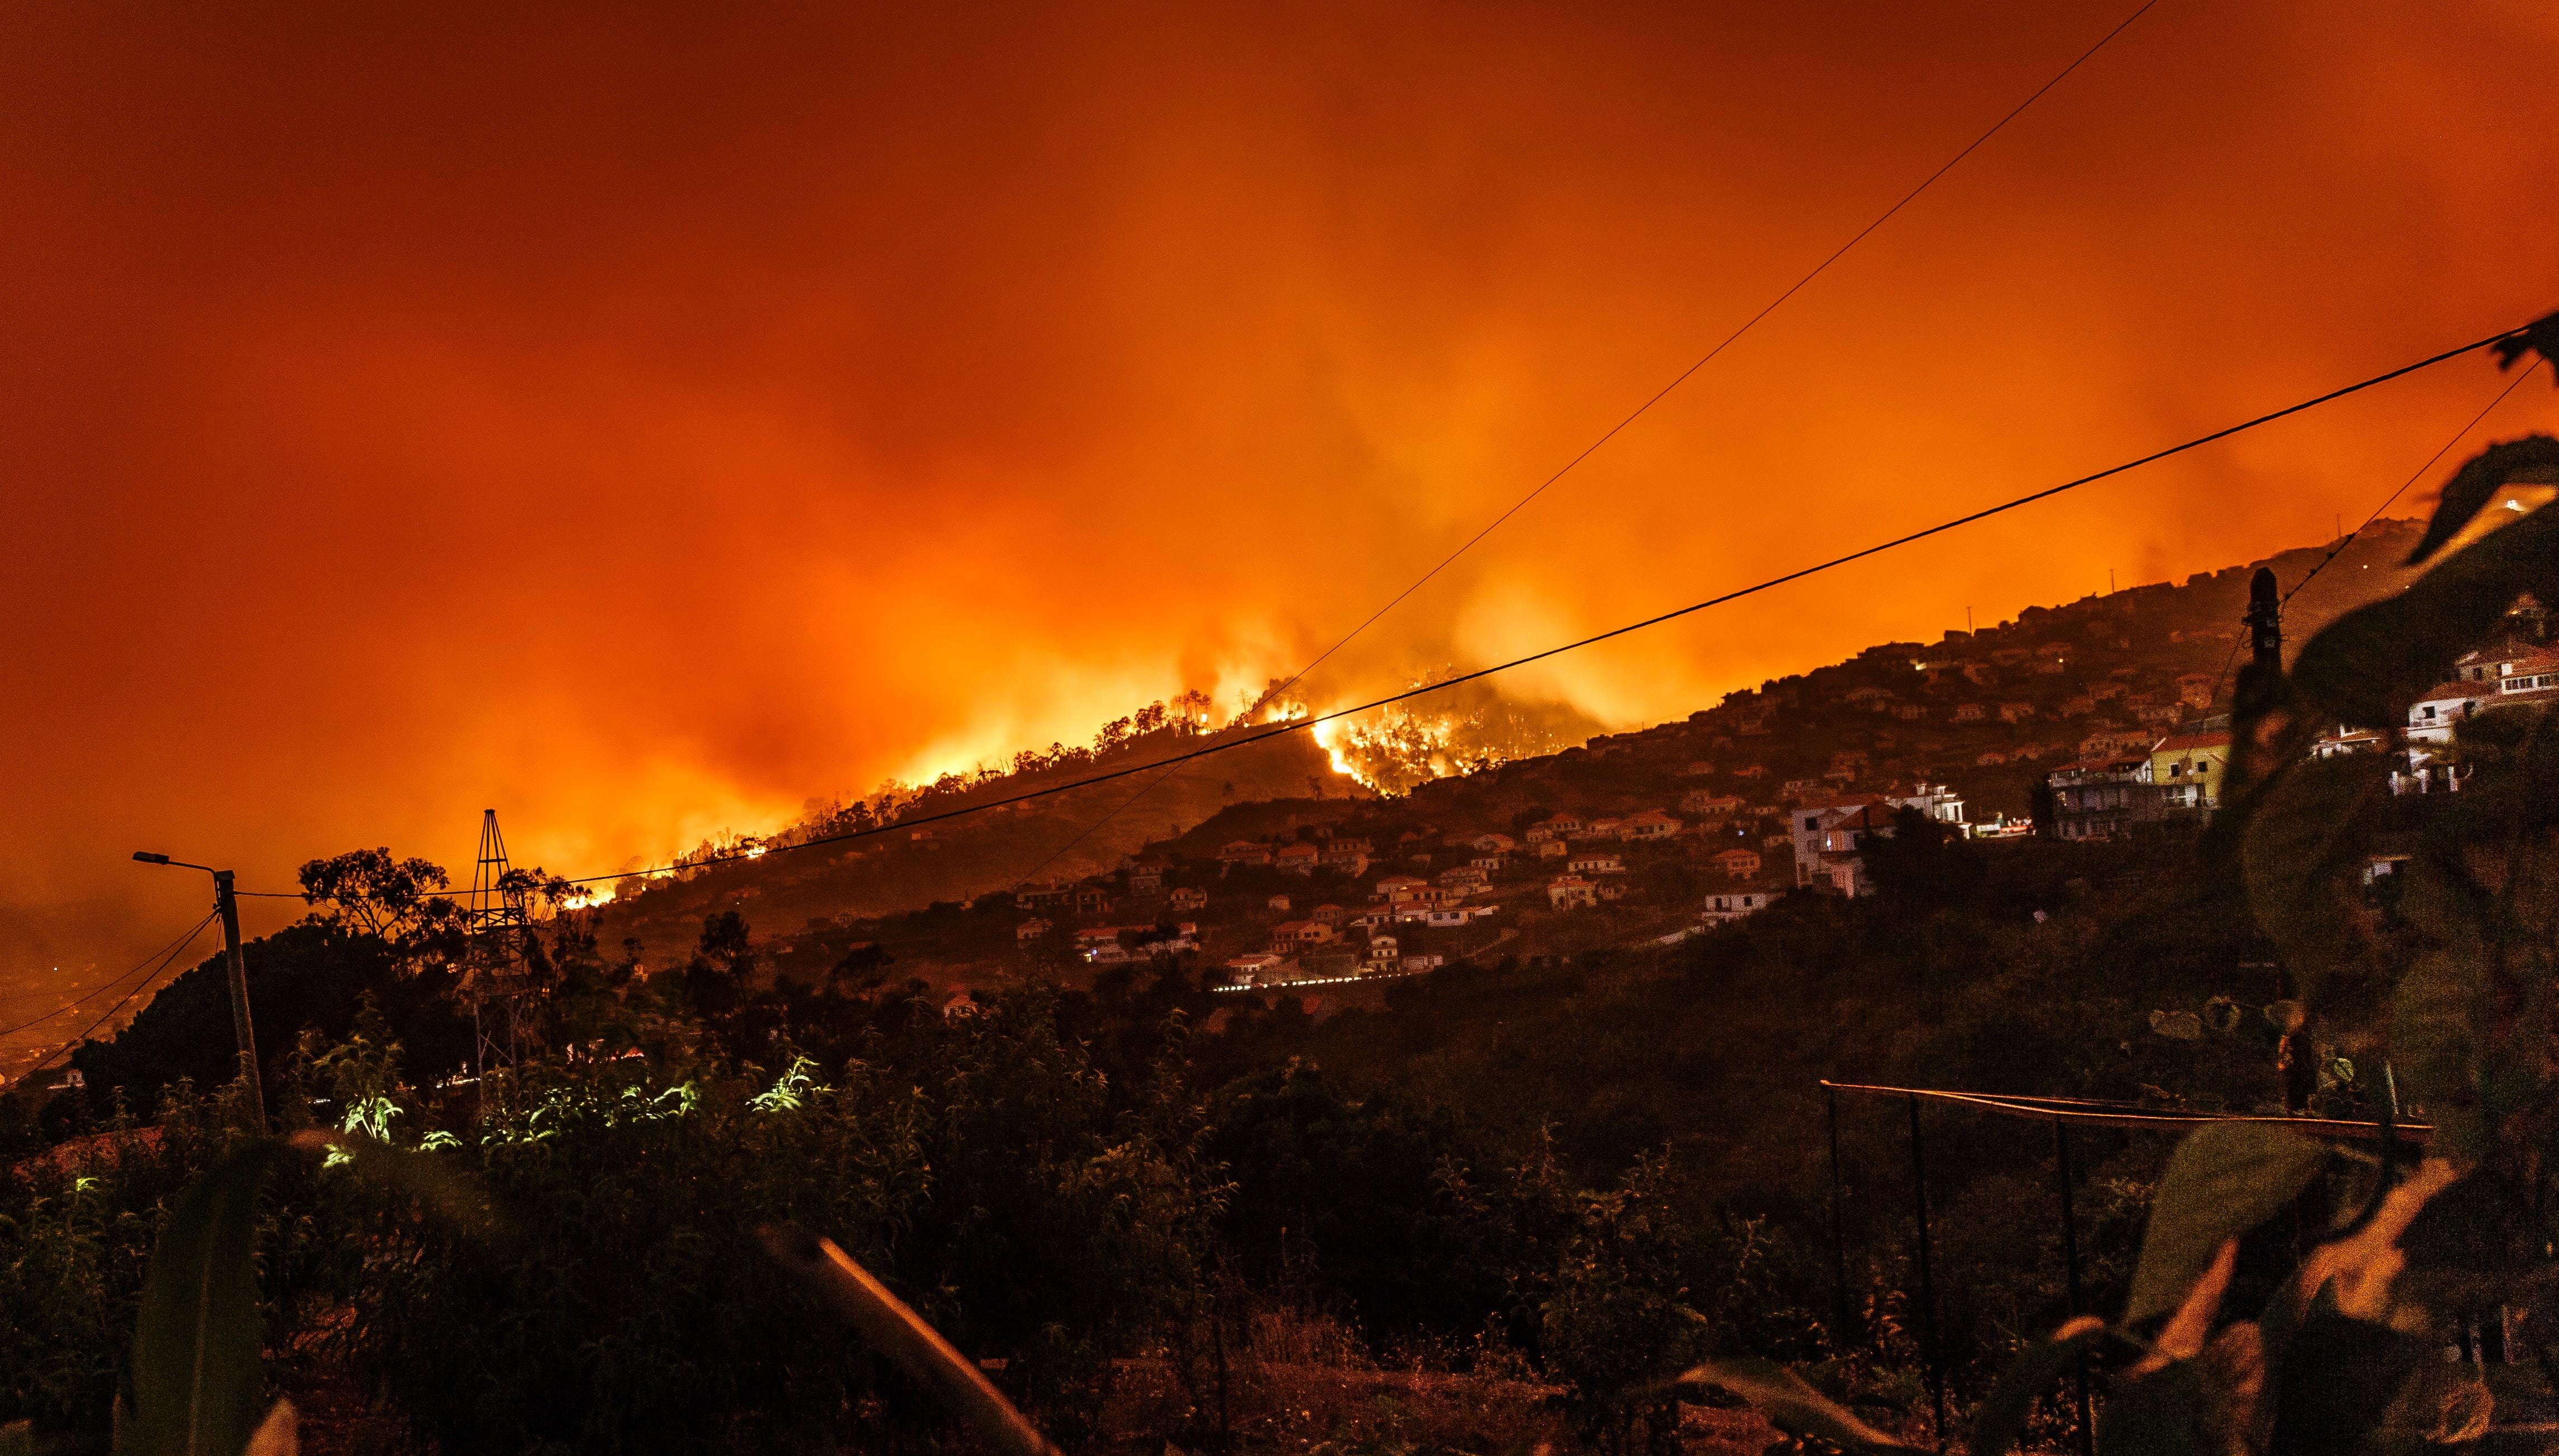 some wildfires, like this one here in Portugal, may actually help forest ecosystems